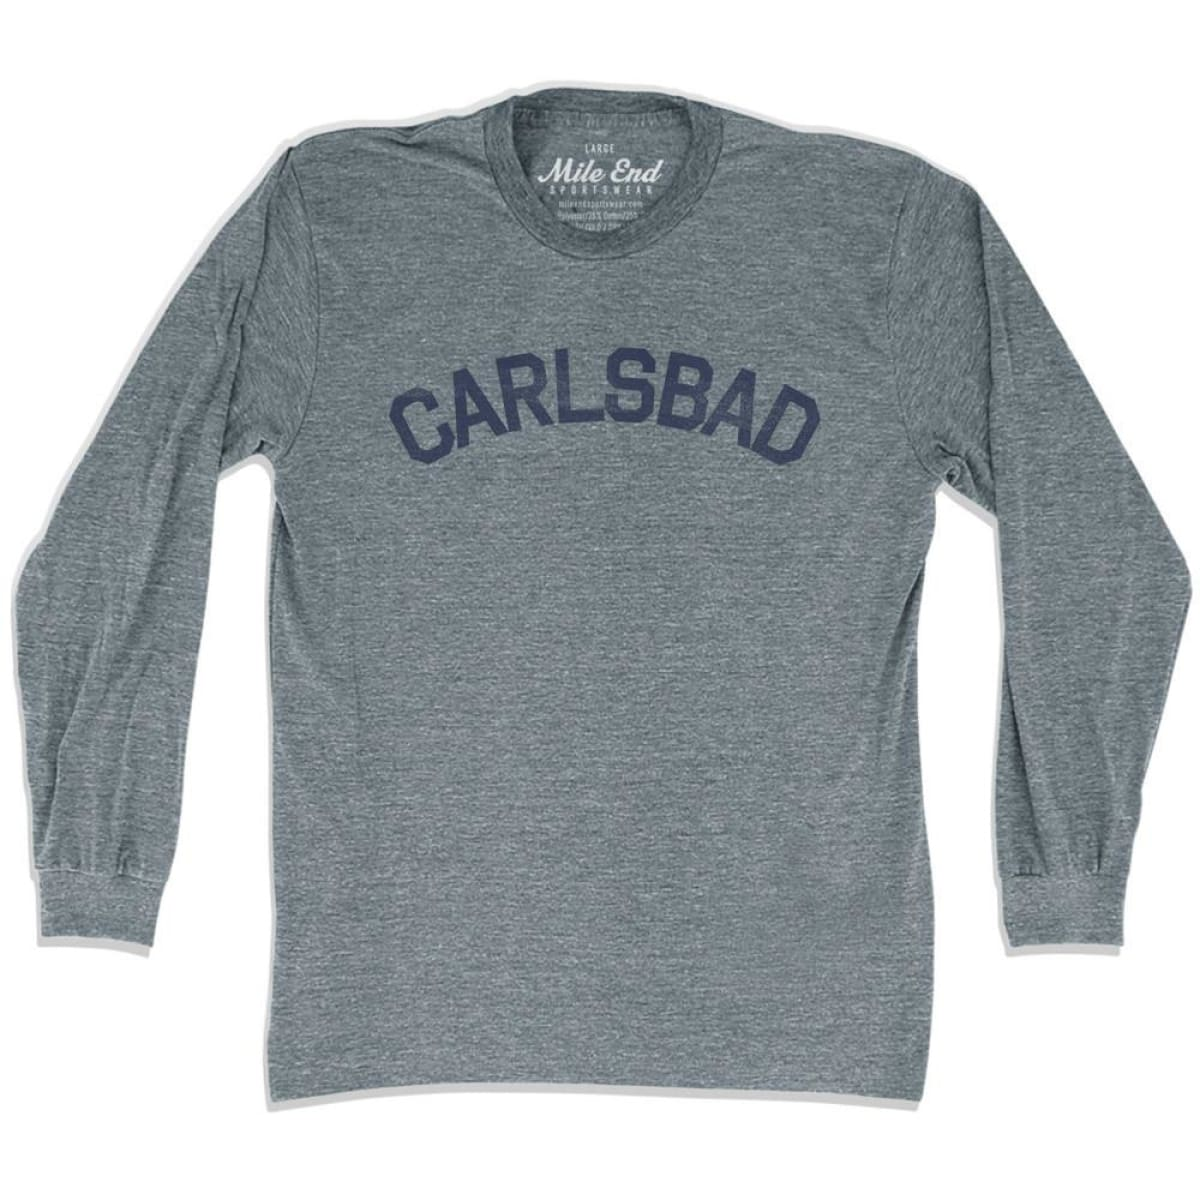 Carlsbad City Vintage Long Sleeve T-Shirt - Athletic Grey / Adult X-Small - Mile End City